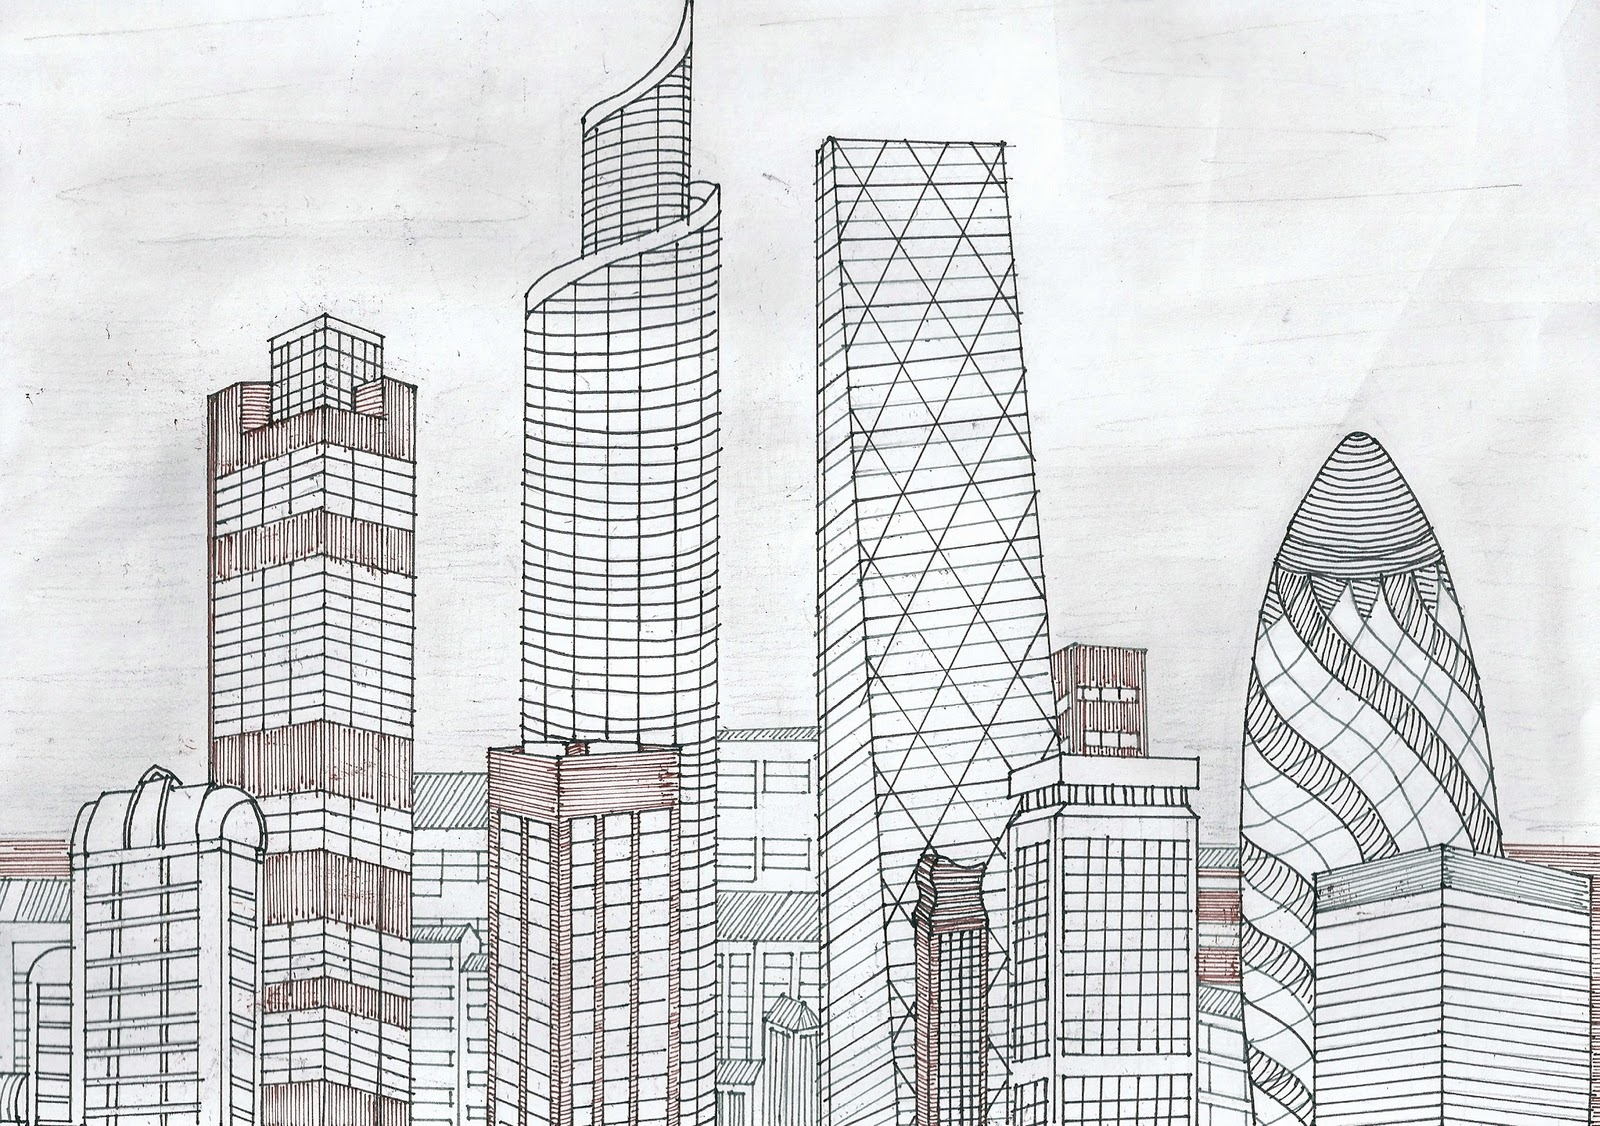 city skyline sketches - photo #27